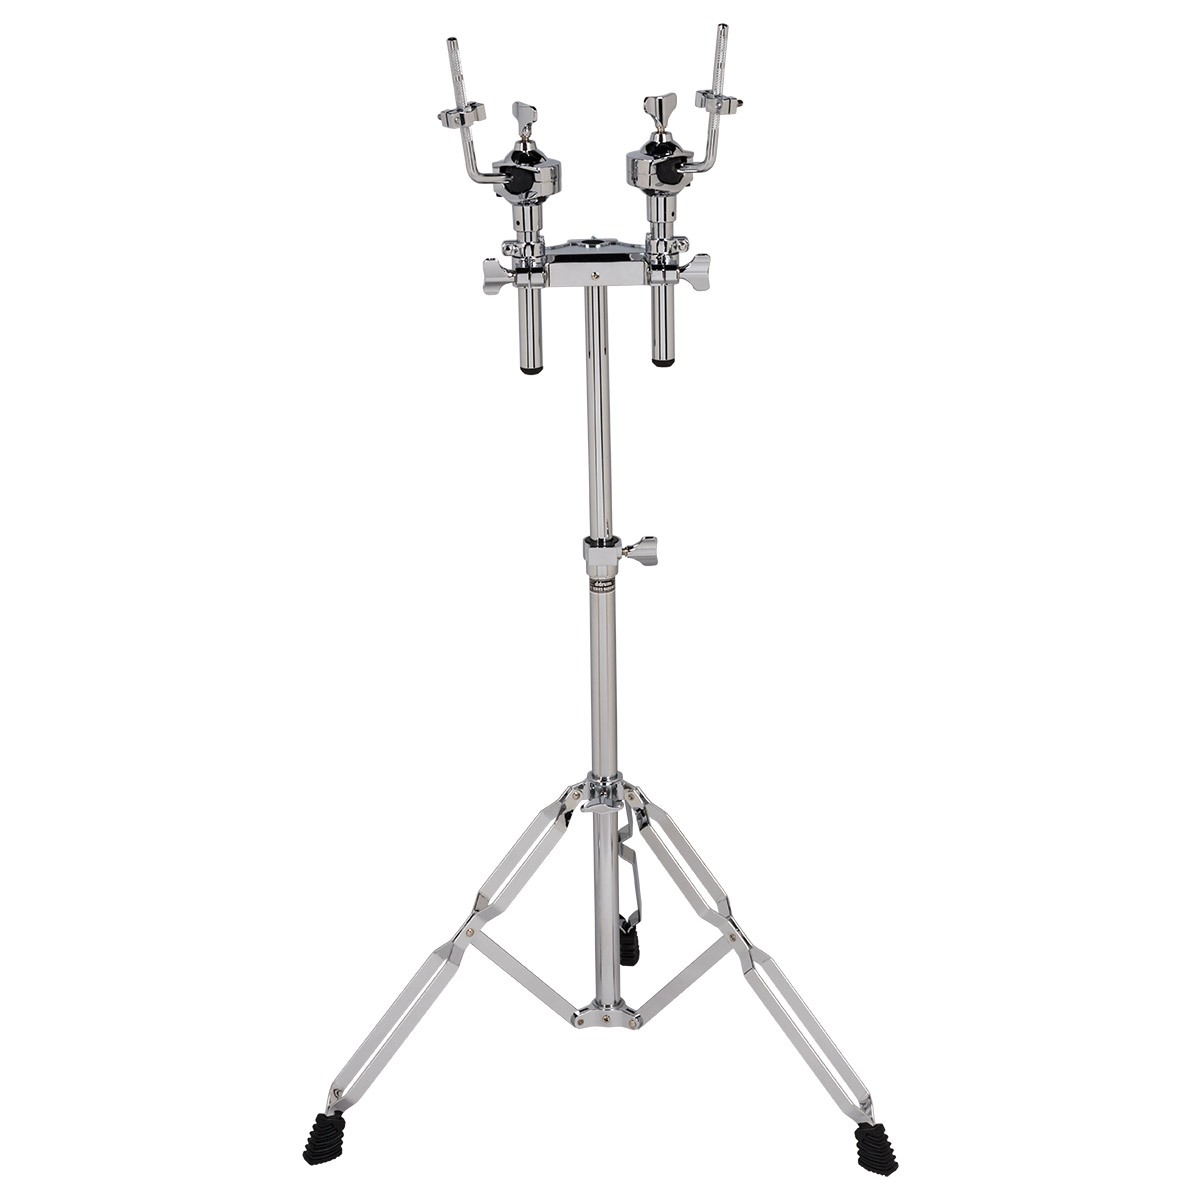 Rack Tom Mount : ddrum rx series double rack tom stand mount with memory locking detachable arms 814064024410 ebay ~ Russianpoet.info Haus und Dekorationen